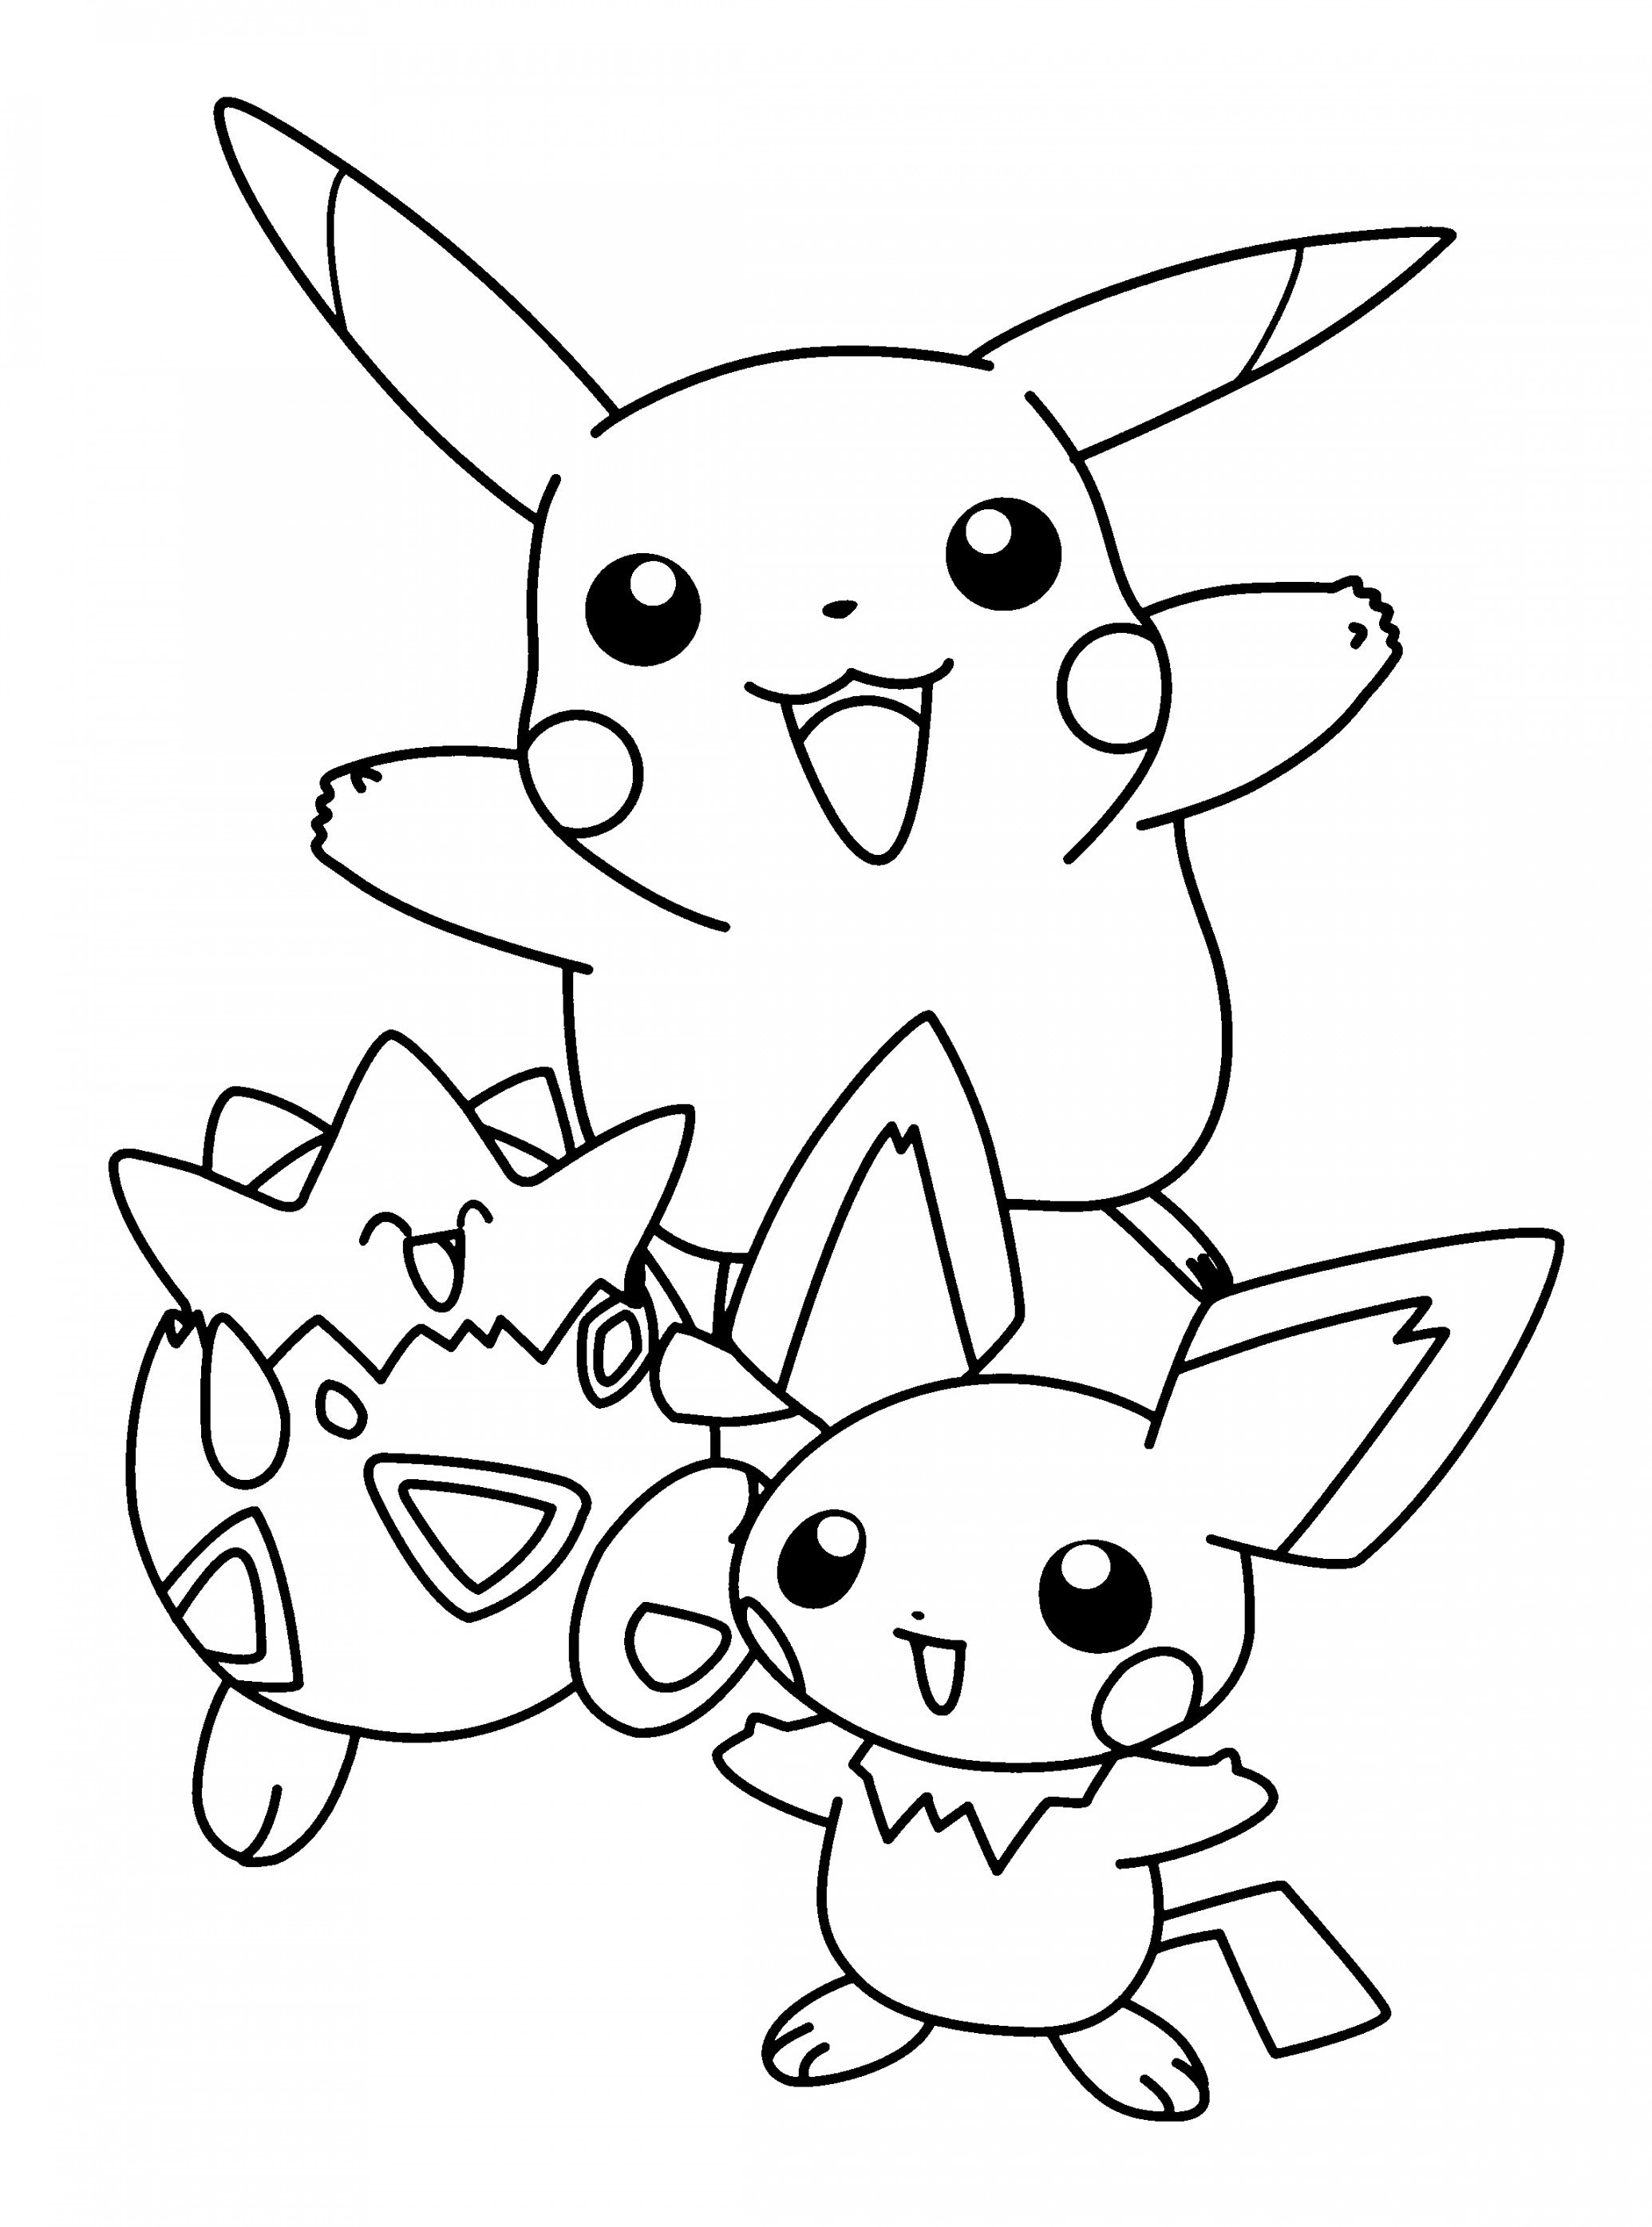 pikachu images for coloring adorable pikachu coloring pages 101 coloring for coloring images pikachu